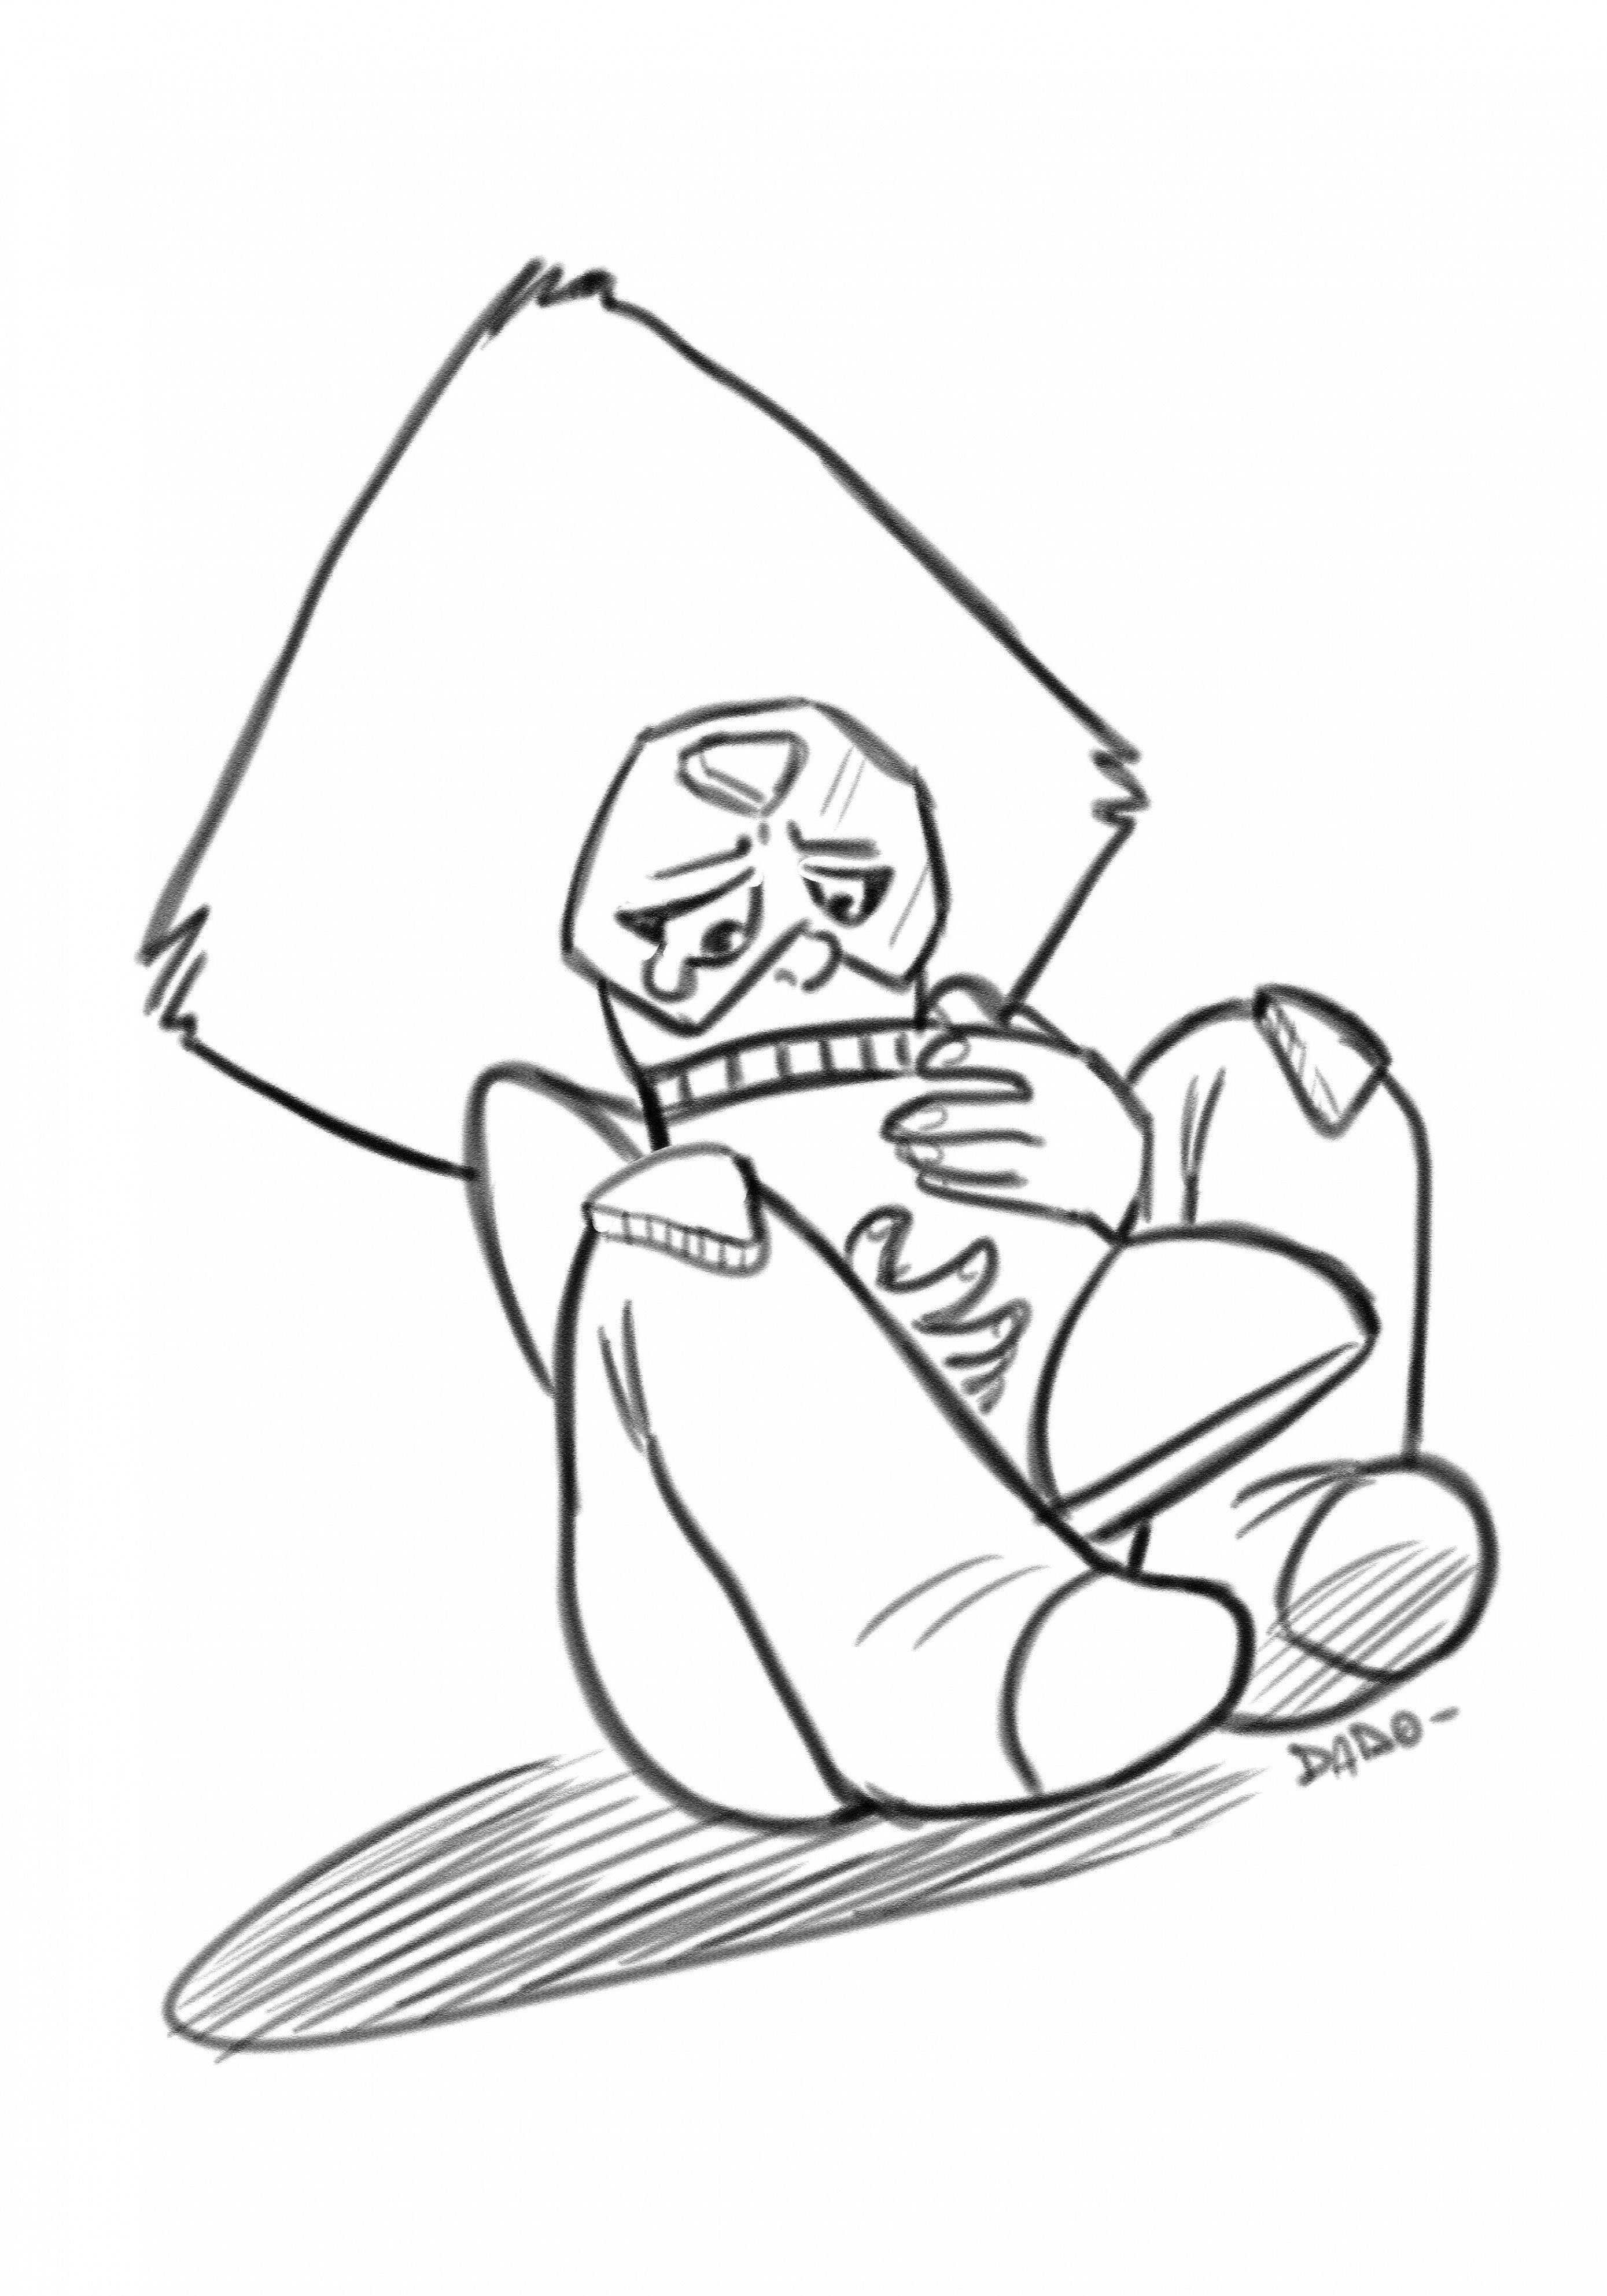 Candy Corn Coloring Page Luxury Steven Universe Coloring